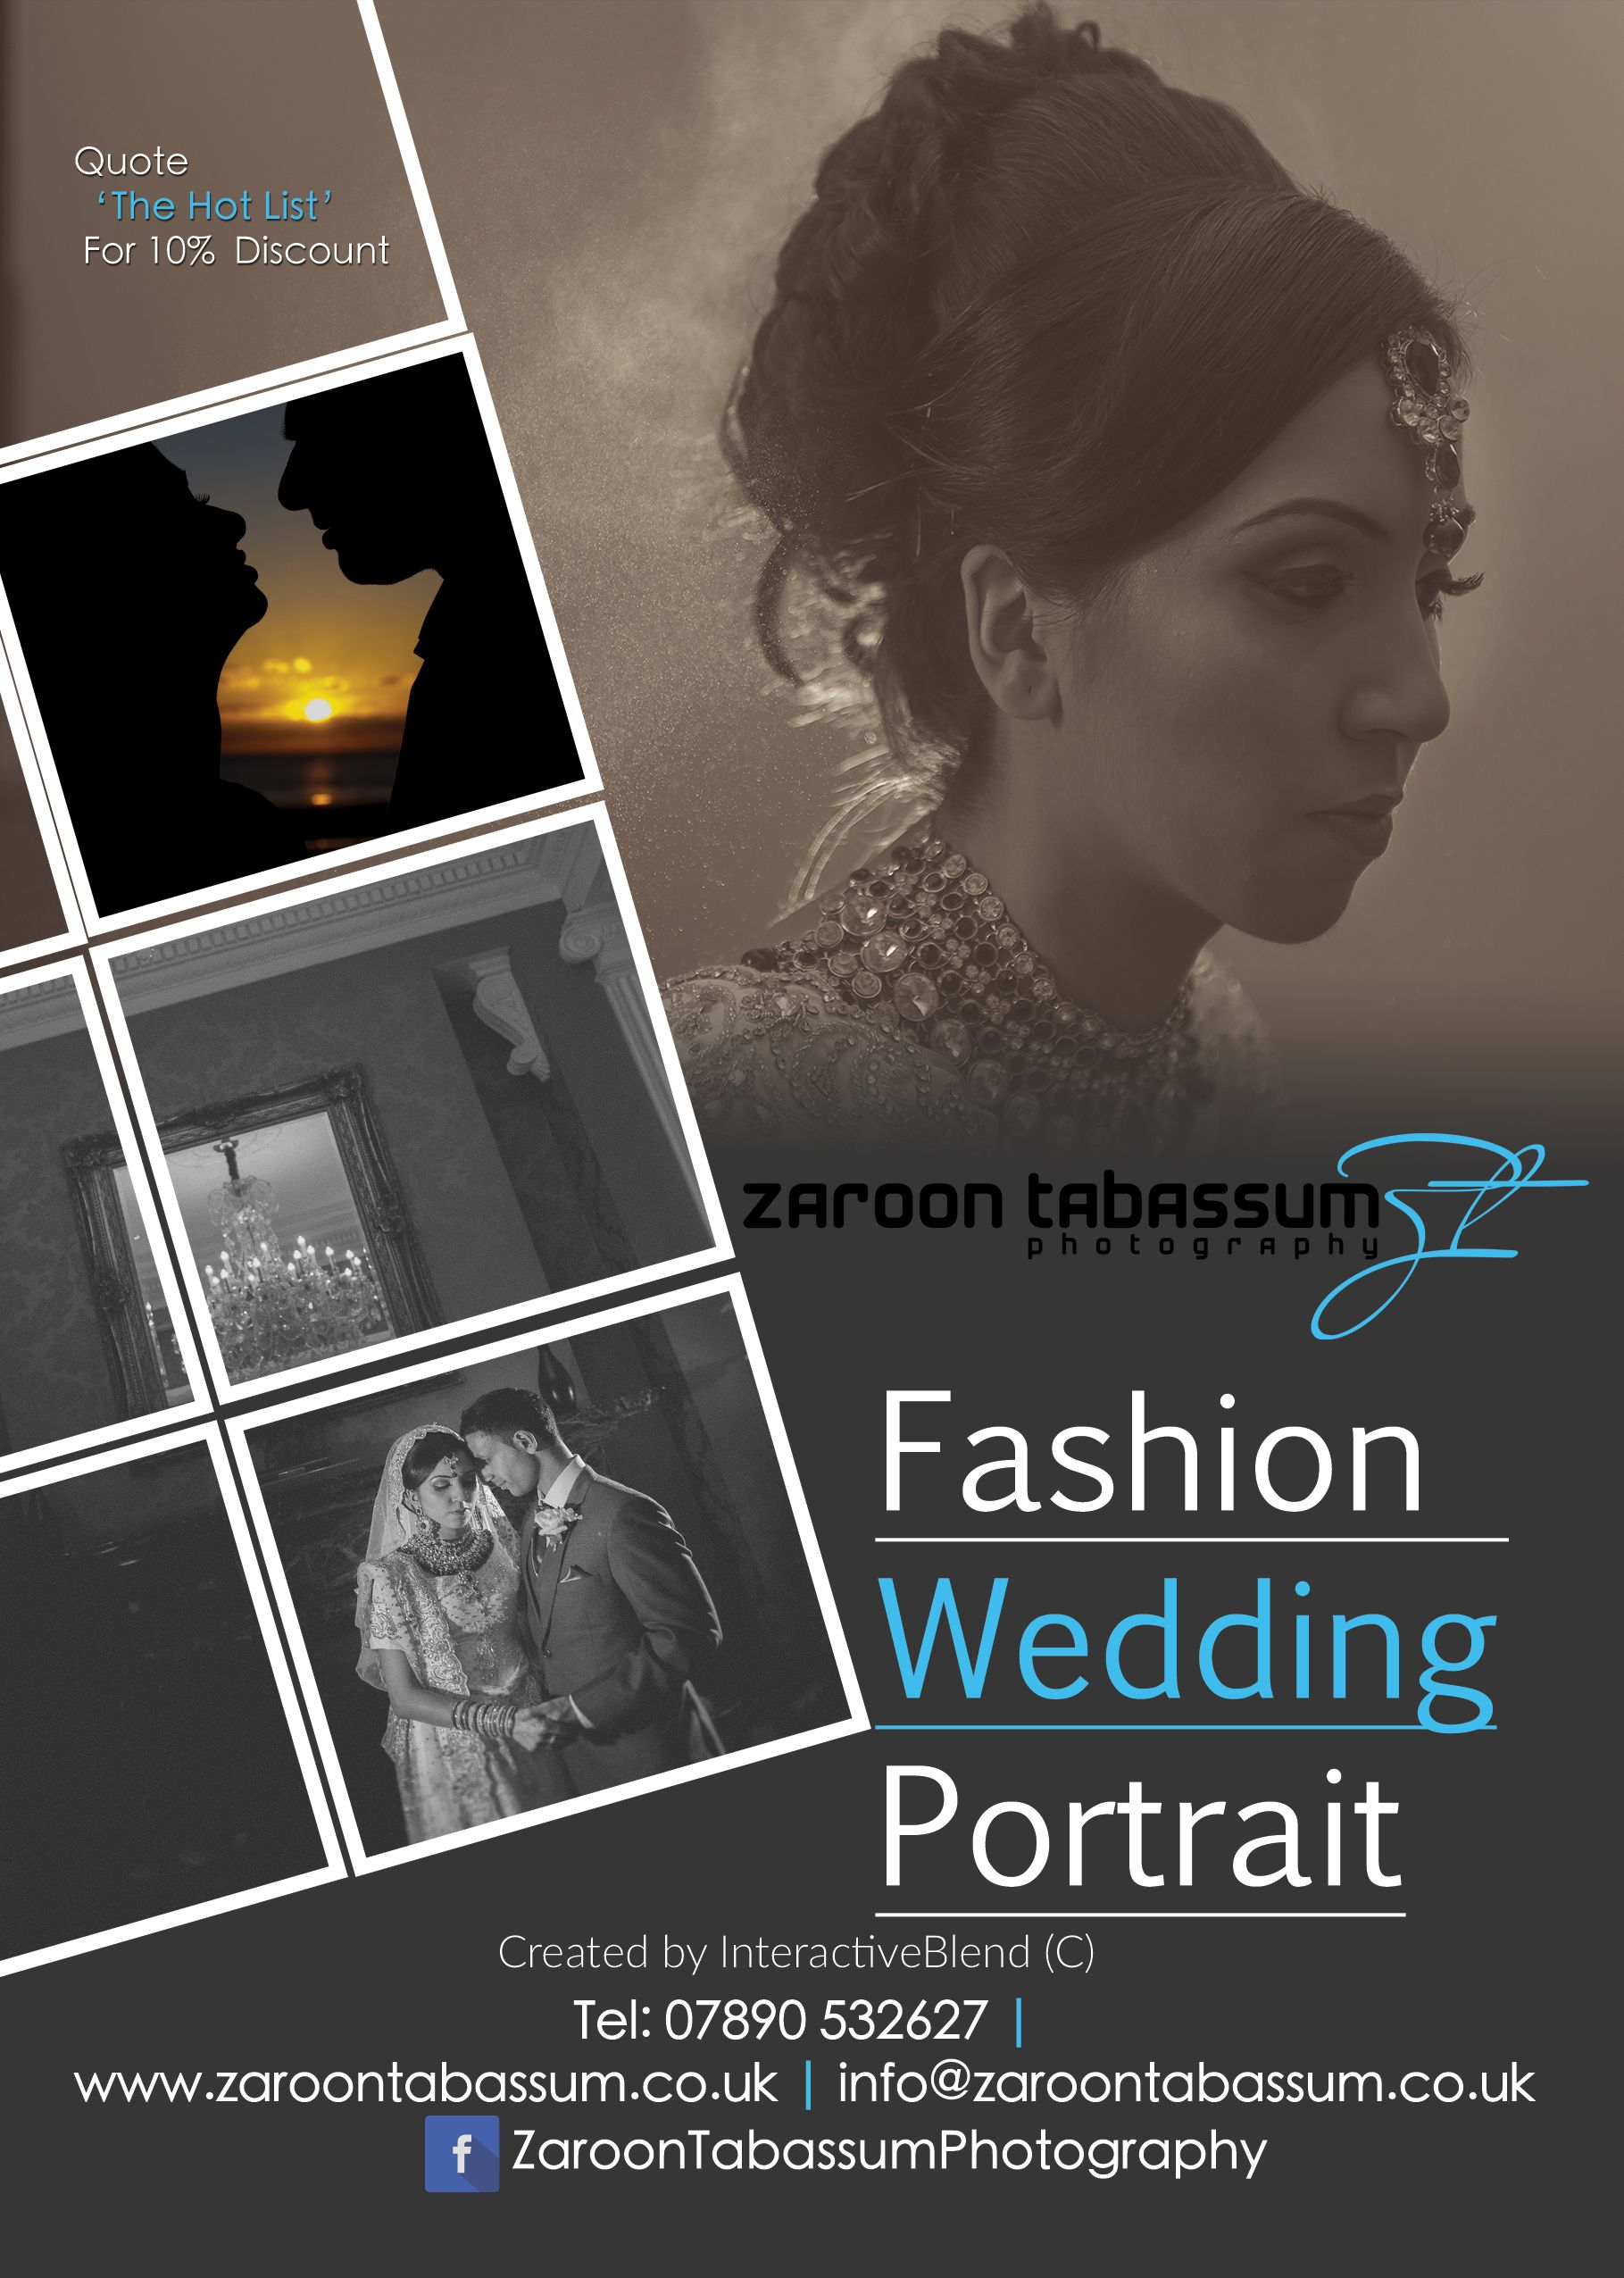 A5 Advertisement for a Fashion Photographer Wedding